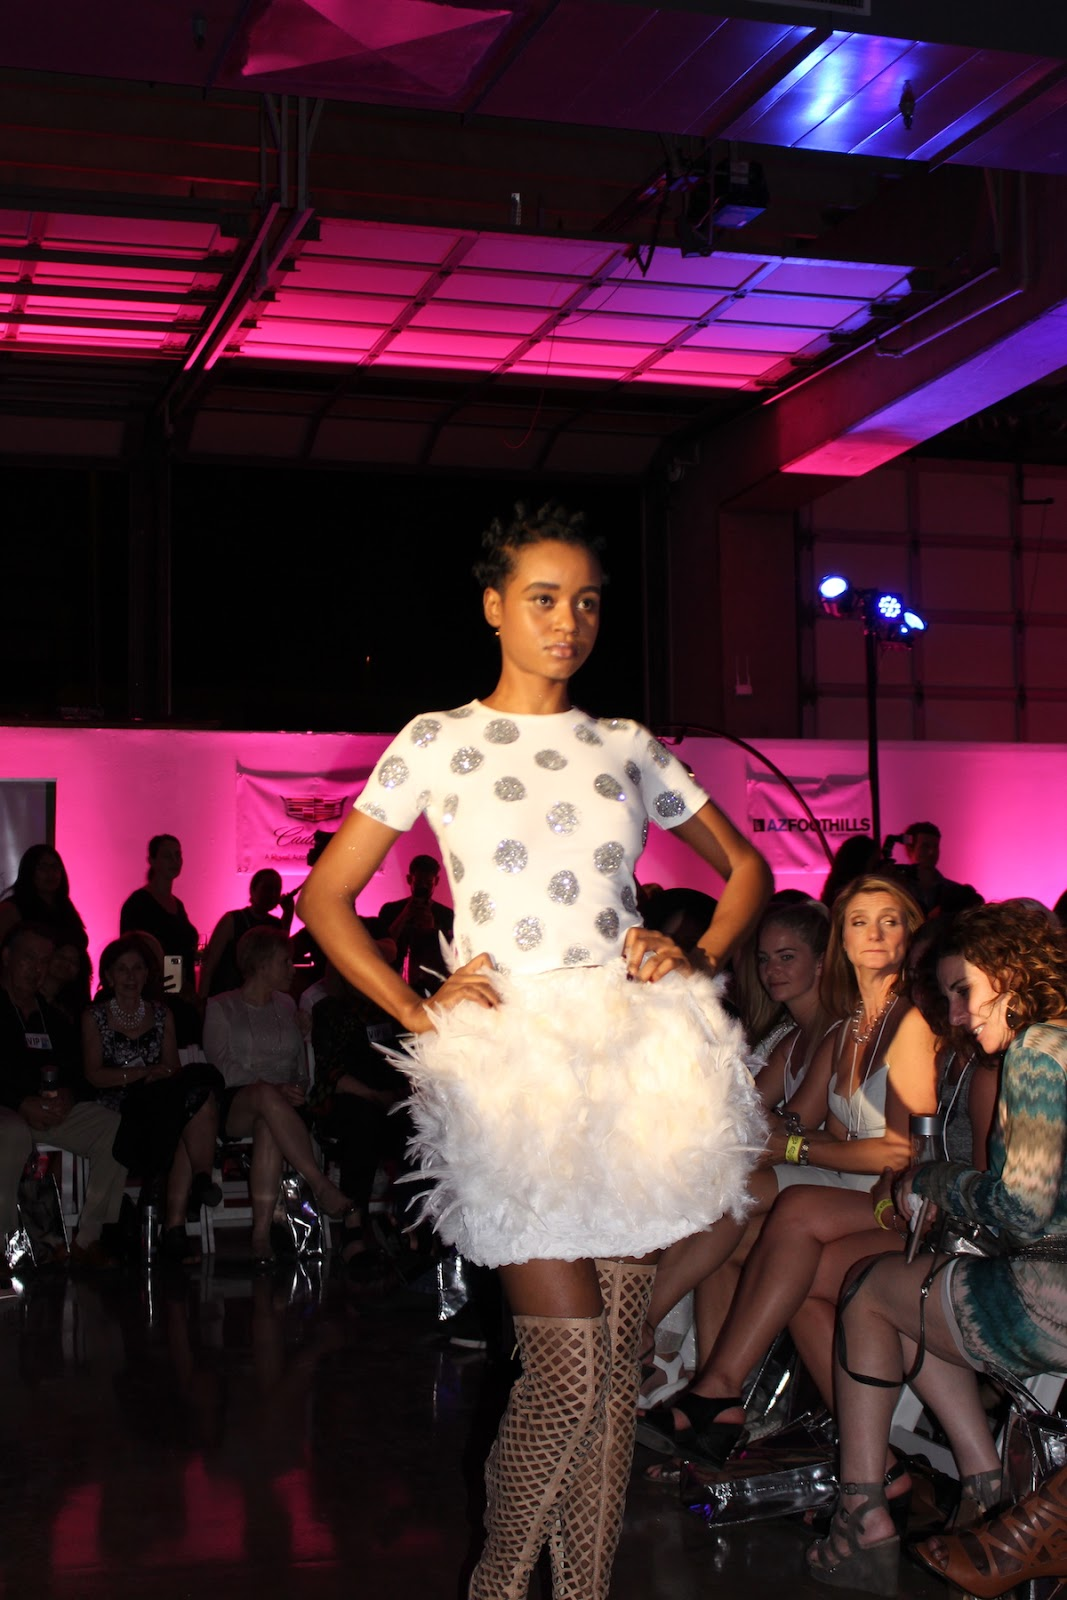 My favorite model is wearing a white and silver polka dot top, along with a poofy skirt. She is rocking it down the runway with a lot of personality.